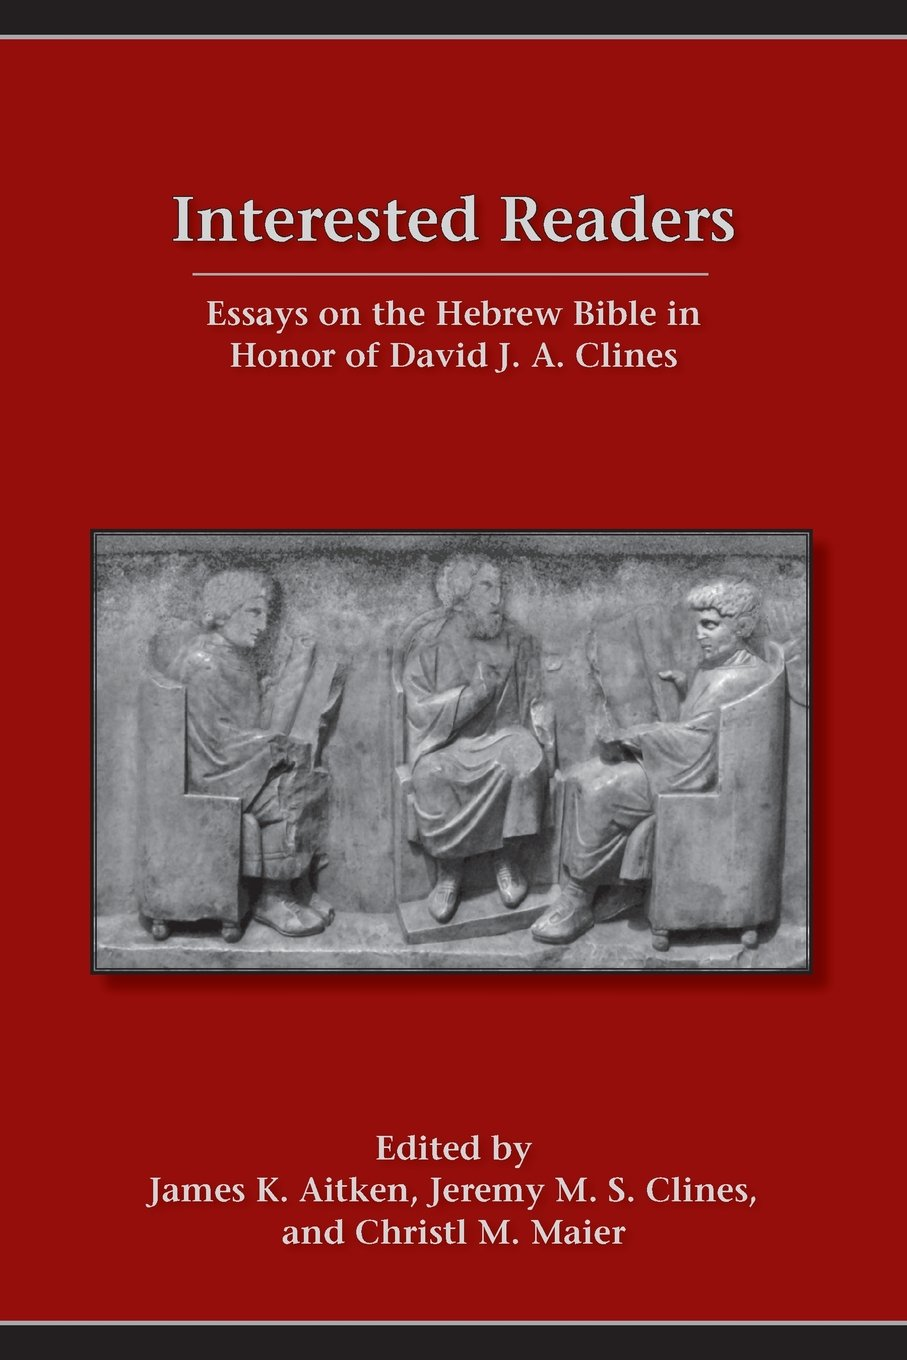 interested readers essays on the hebrew bible in honor of david interested readers essays on the hebrew bible in honor of david j a clines james k aitken jeremy m s clines christl m maier 9781589839243